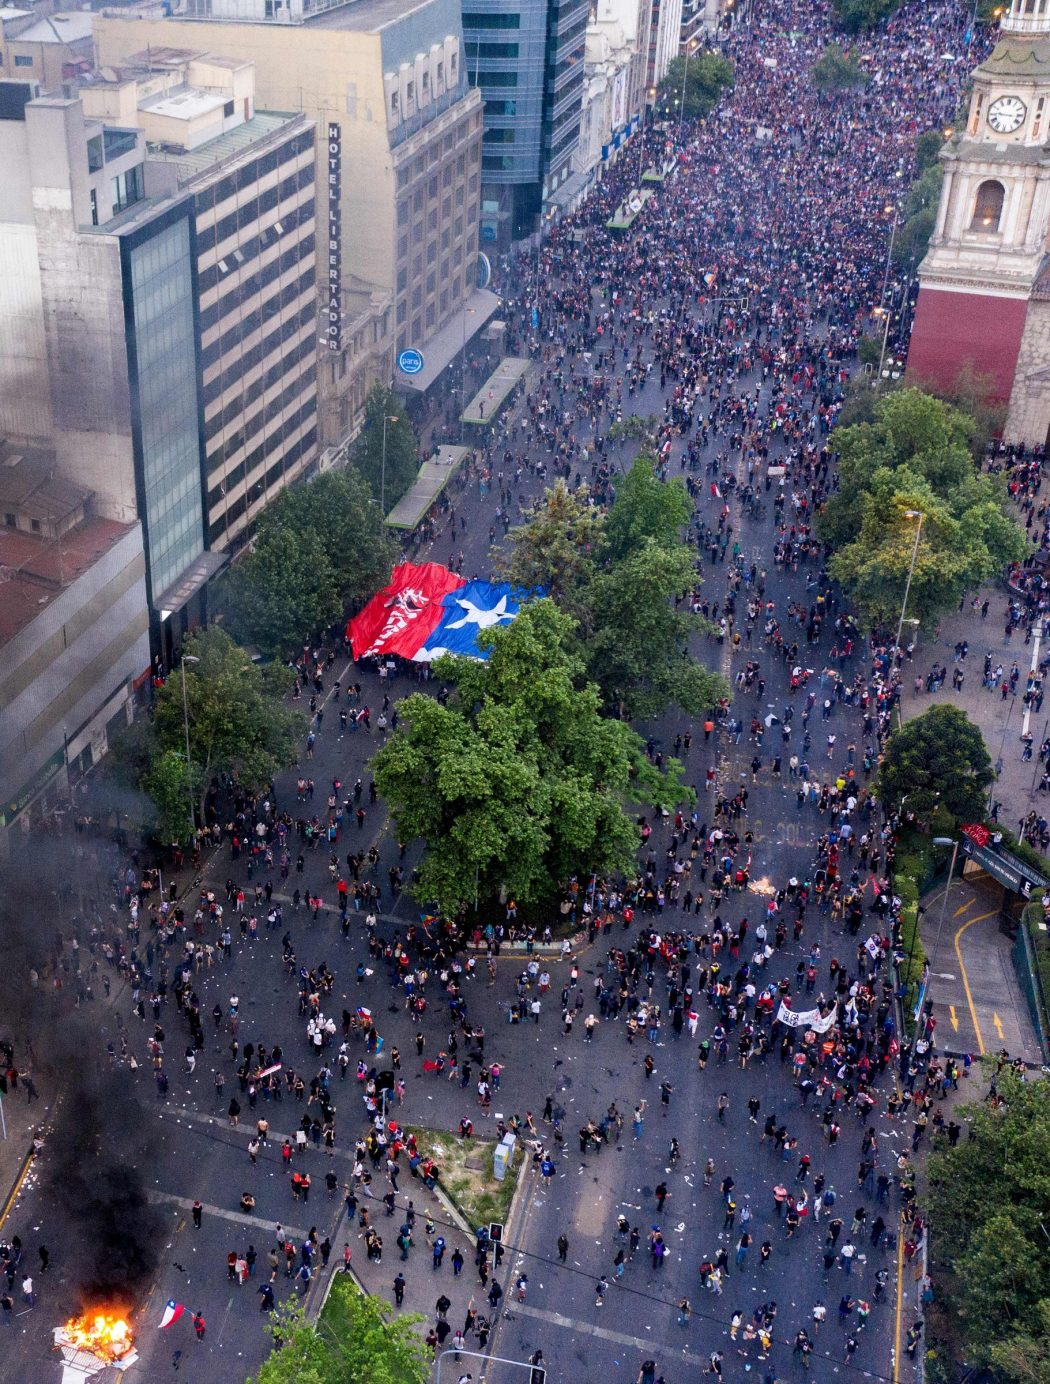 Aerial view of people demonstrating in Santiago, on October 25, 2019, a week after violence protests started. – Demonstrations against a hike in metro ticket prices in Chile's capital exploded into violence on October 18, unleashing widening protests over living costs and social inequality. (Photo by PABLO COZZAGLIO / AFP)